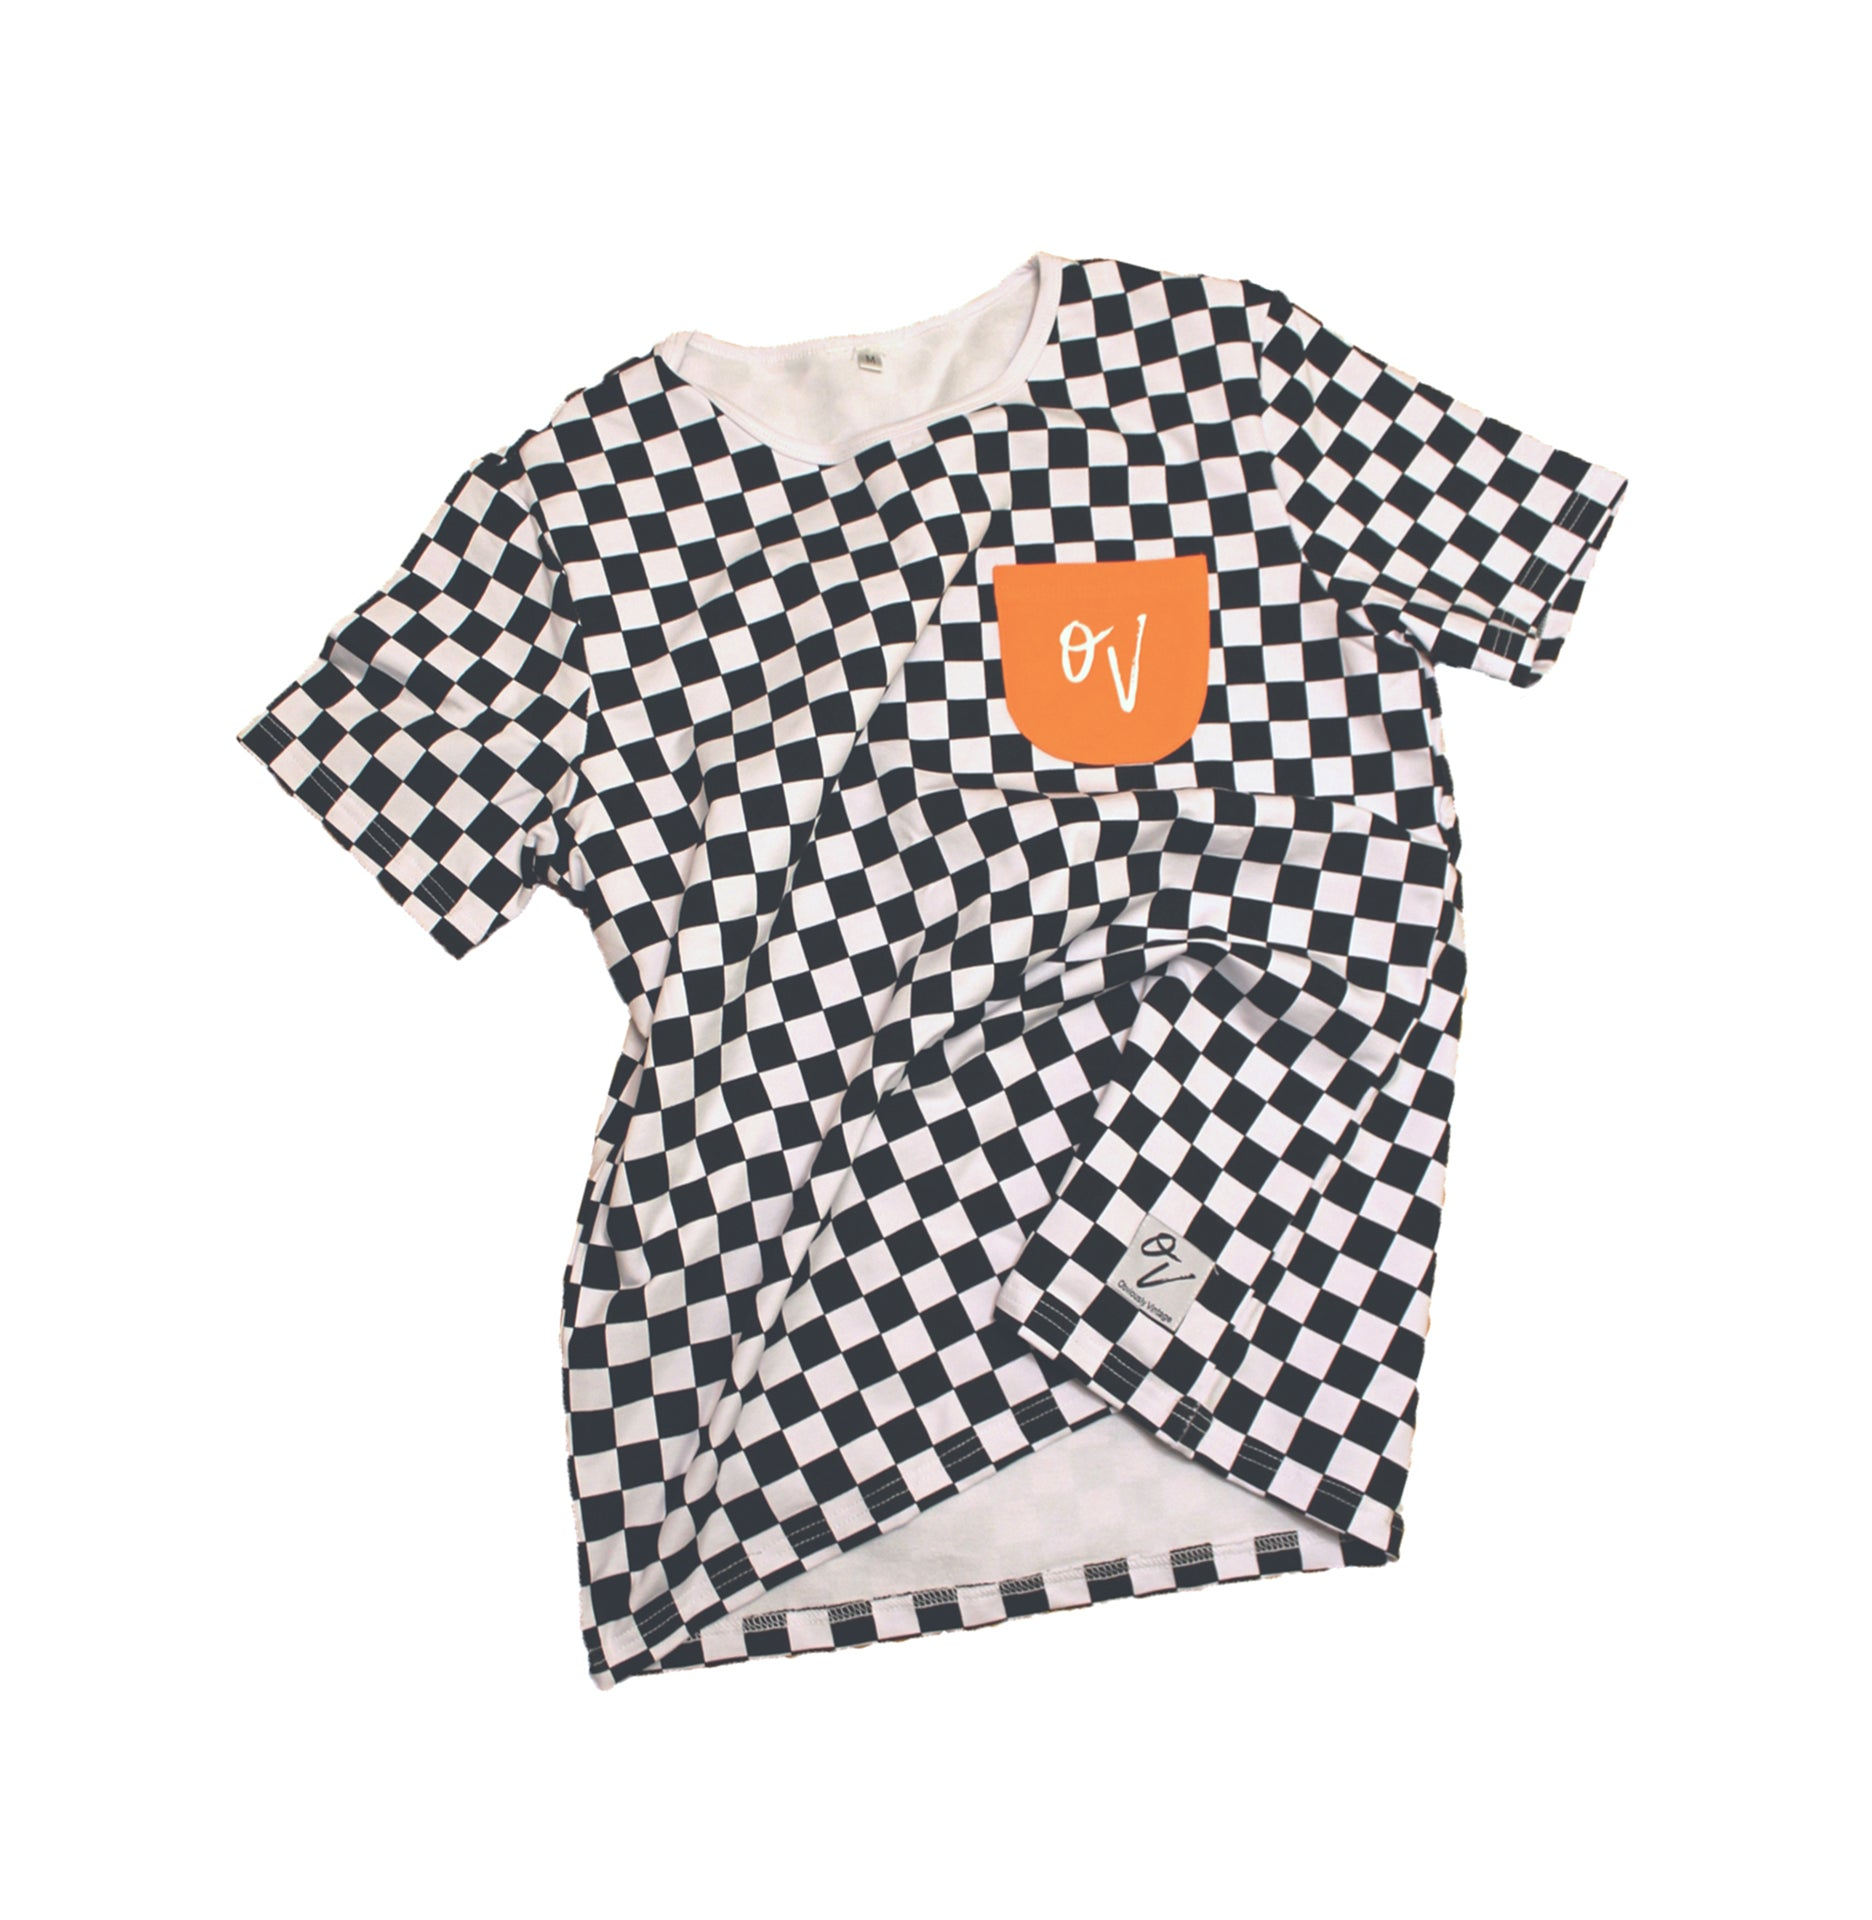 OV Checkered Tee - Heavyweight Tee